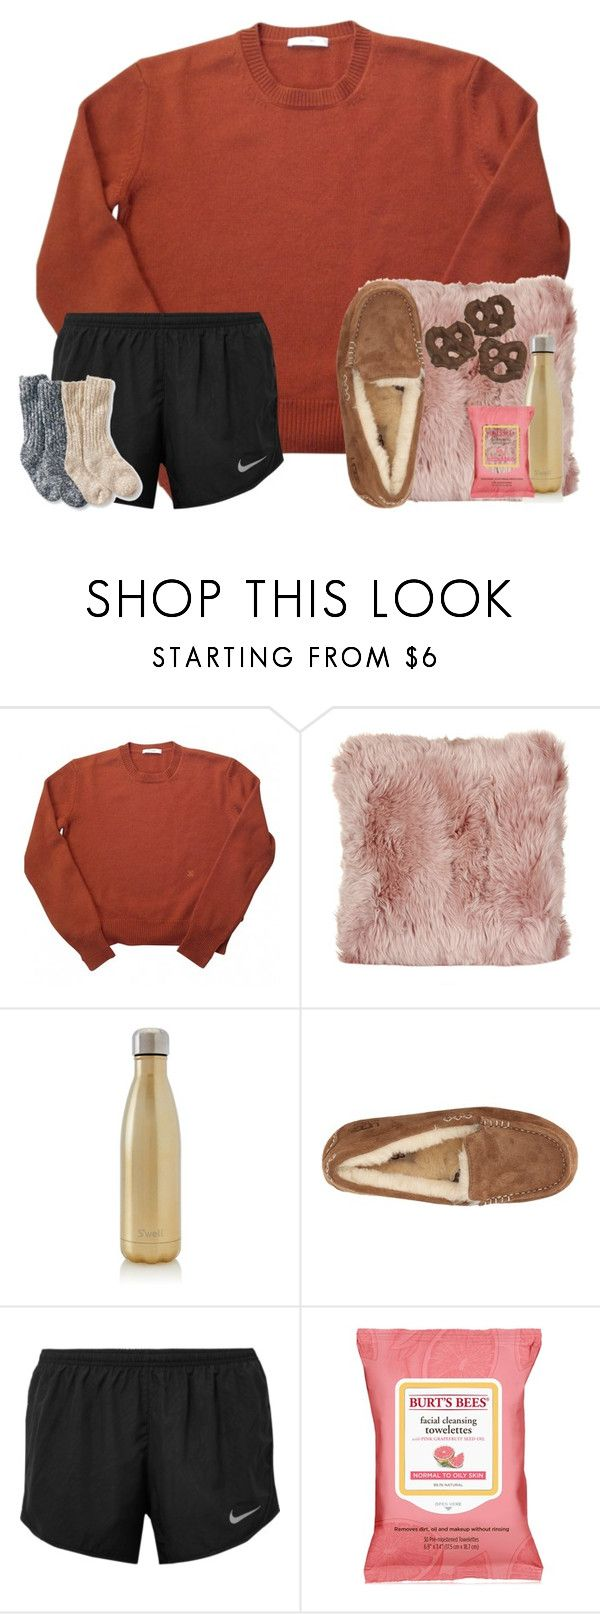 """""""I don't really want a trust fund baby"""" by preppypuffpuff on Polyvore featuring A by Amara, S'well, UGG Australia, NIKE, Burt's Bees and L.L.Bean"""